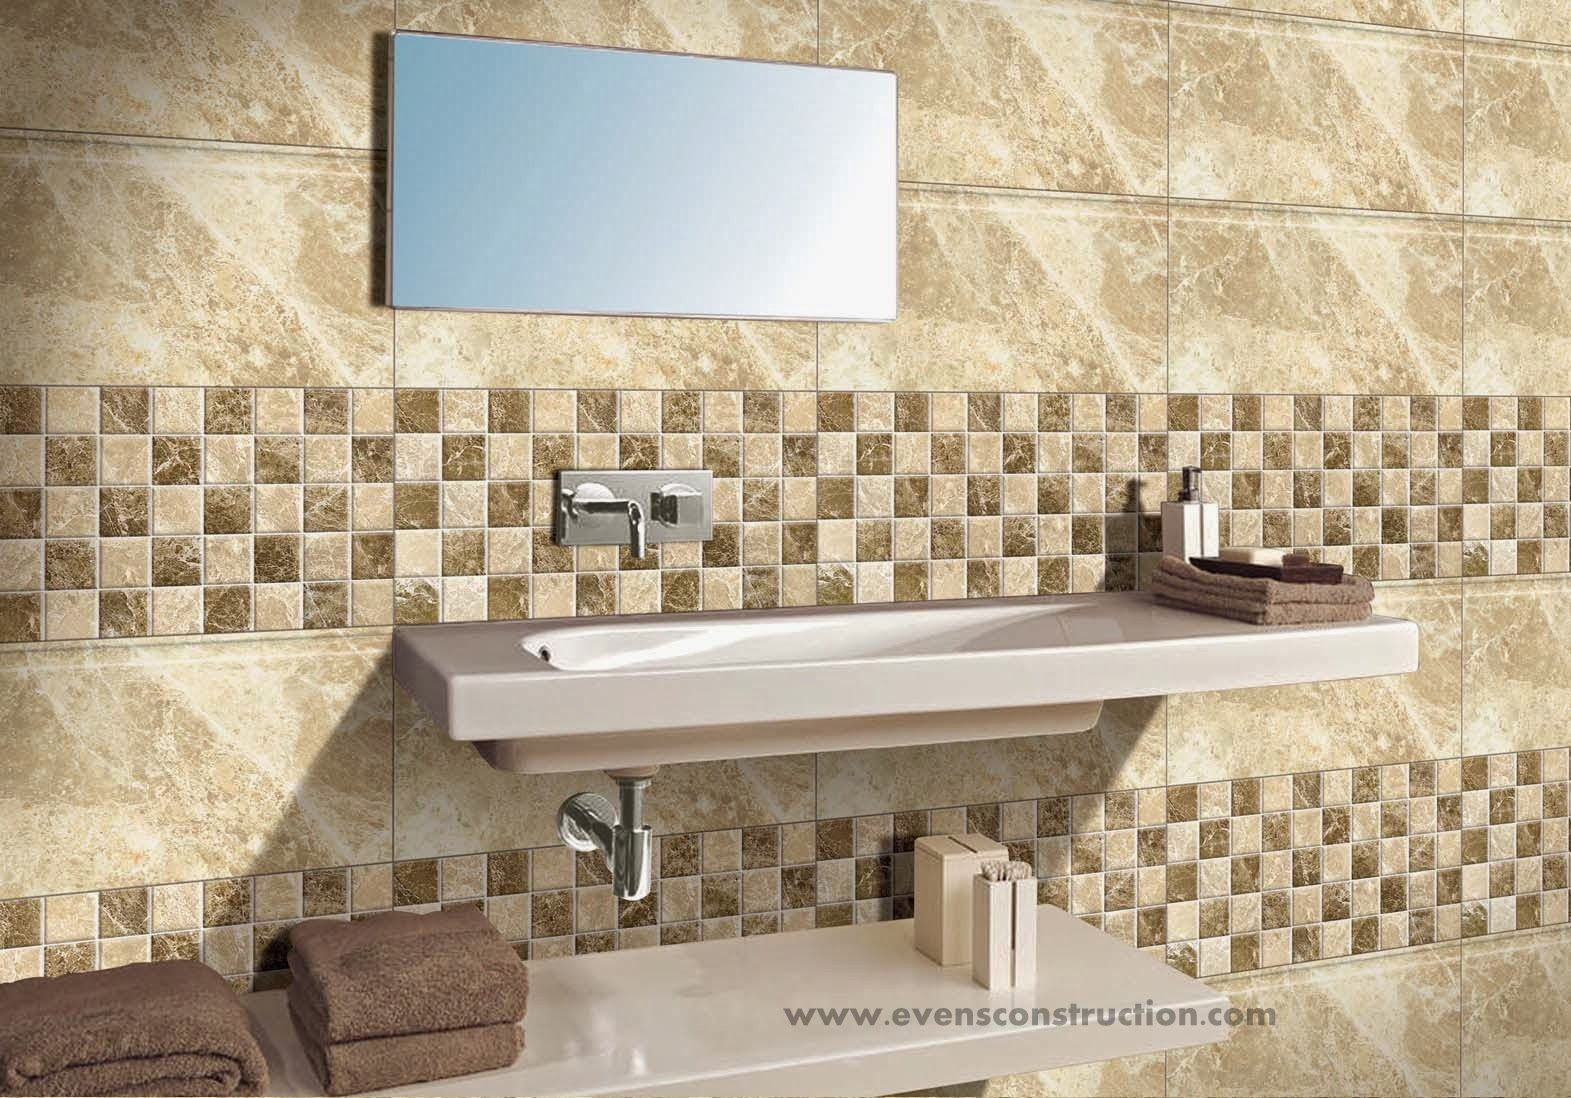 Evens construction pvt ltd bathroom tiles gallery Indian bathroom tiles design pictures